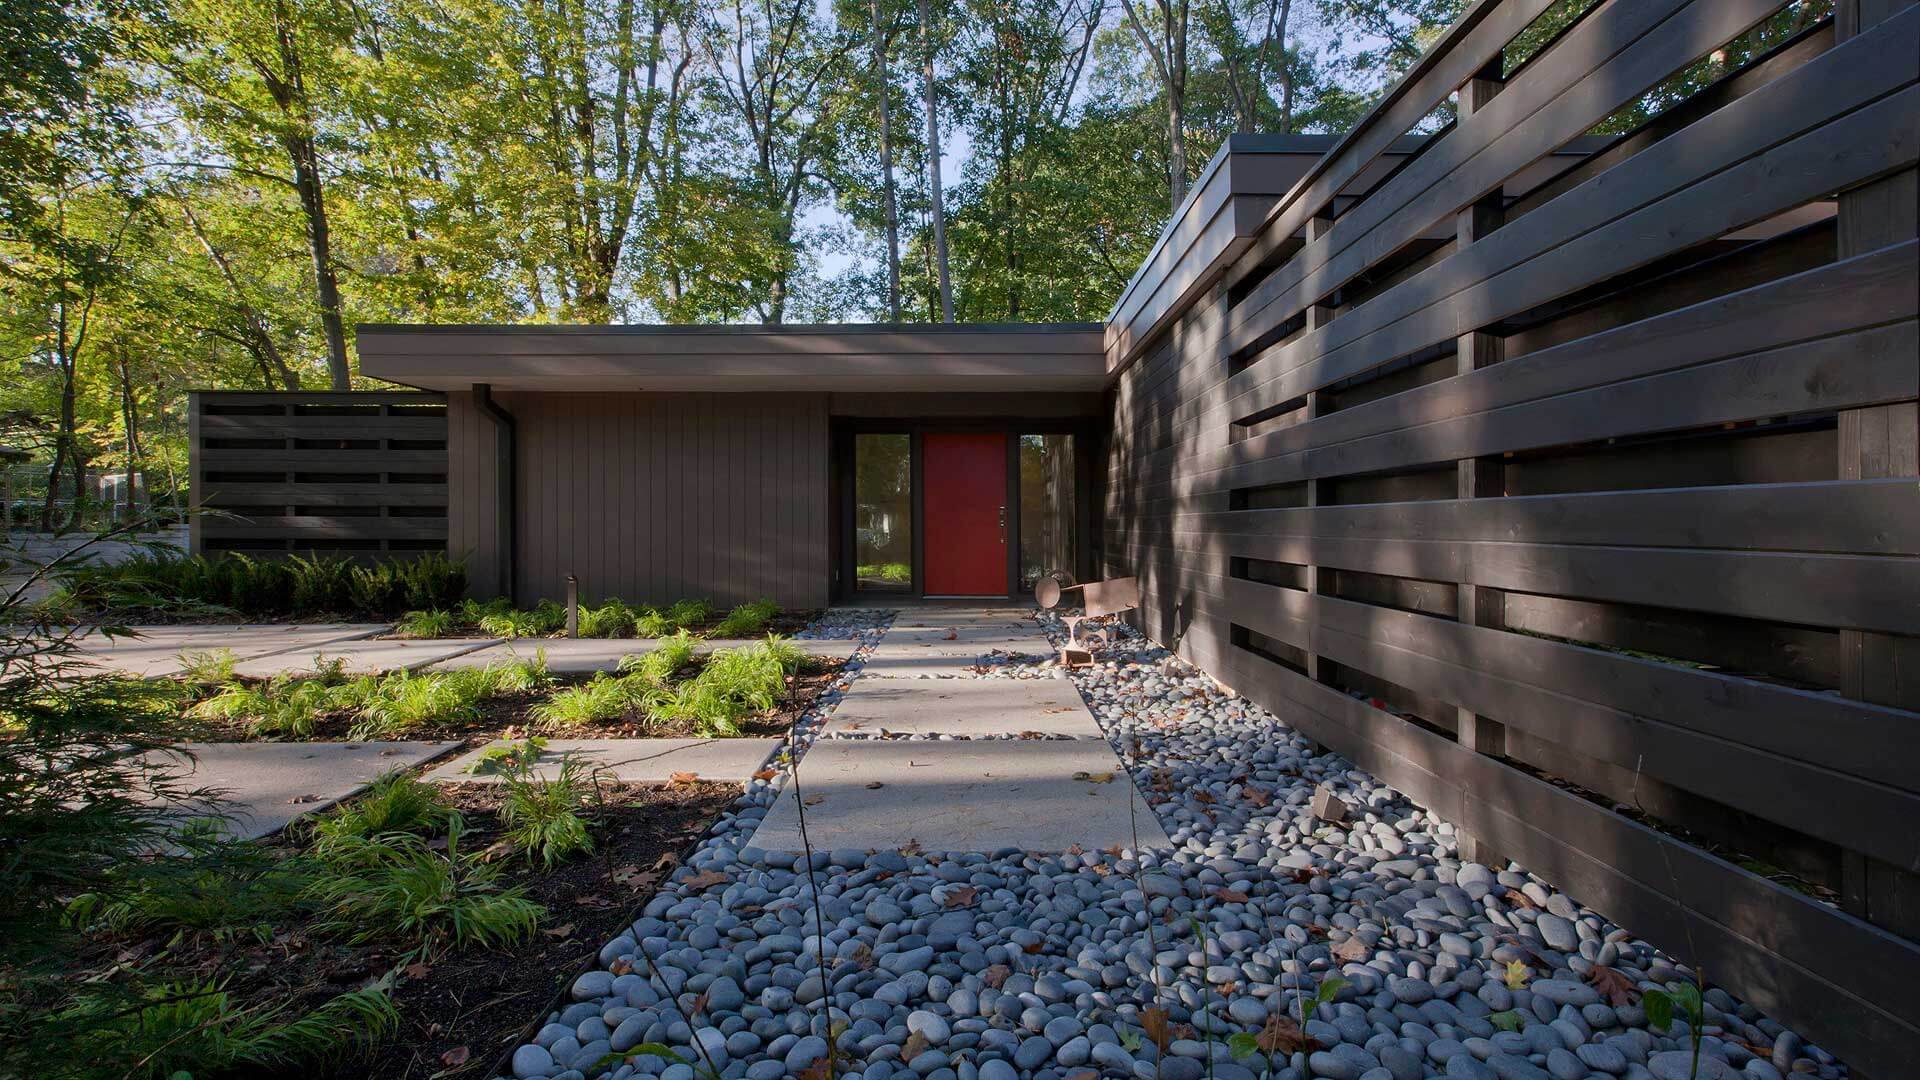 Red door, Mid Mod Entry, screenwall, dog run, modern landscaping, river stone, river rock, steel site sculpture, concrete pavers, concrete pads, steel sculpture, flat roofs, roof overhangs - Midcentury Modern Renovation - 81st Street - Indianapolis, Christopher Short, Architect, HAUS Architecture